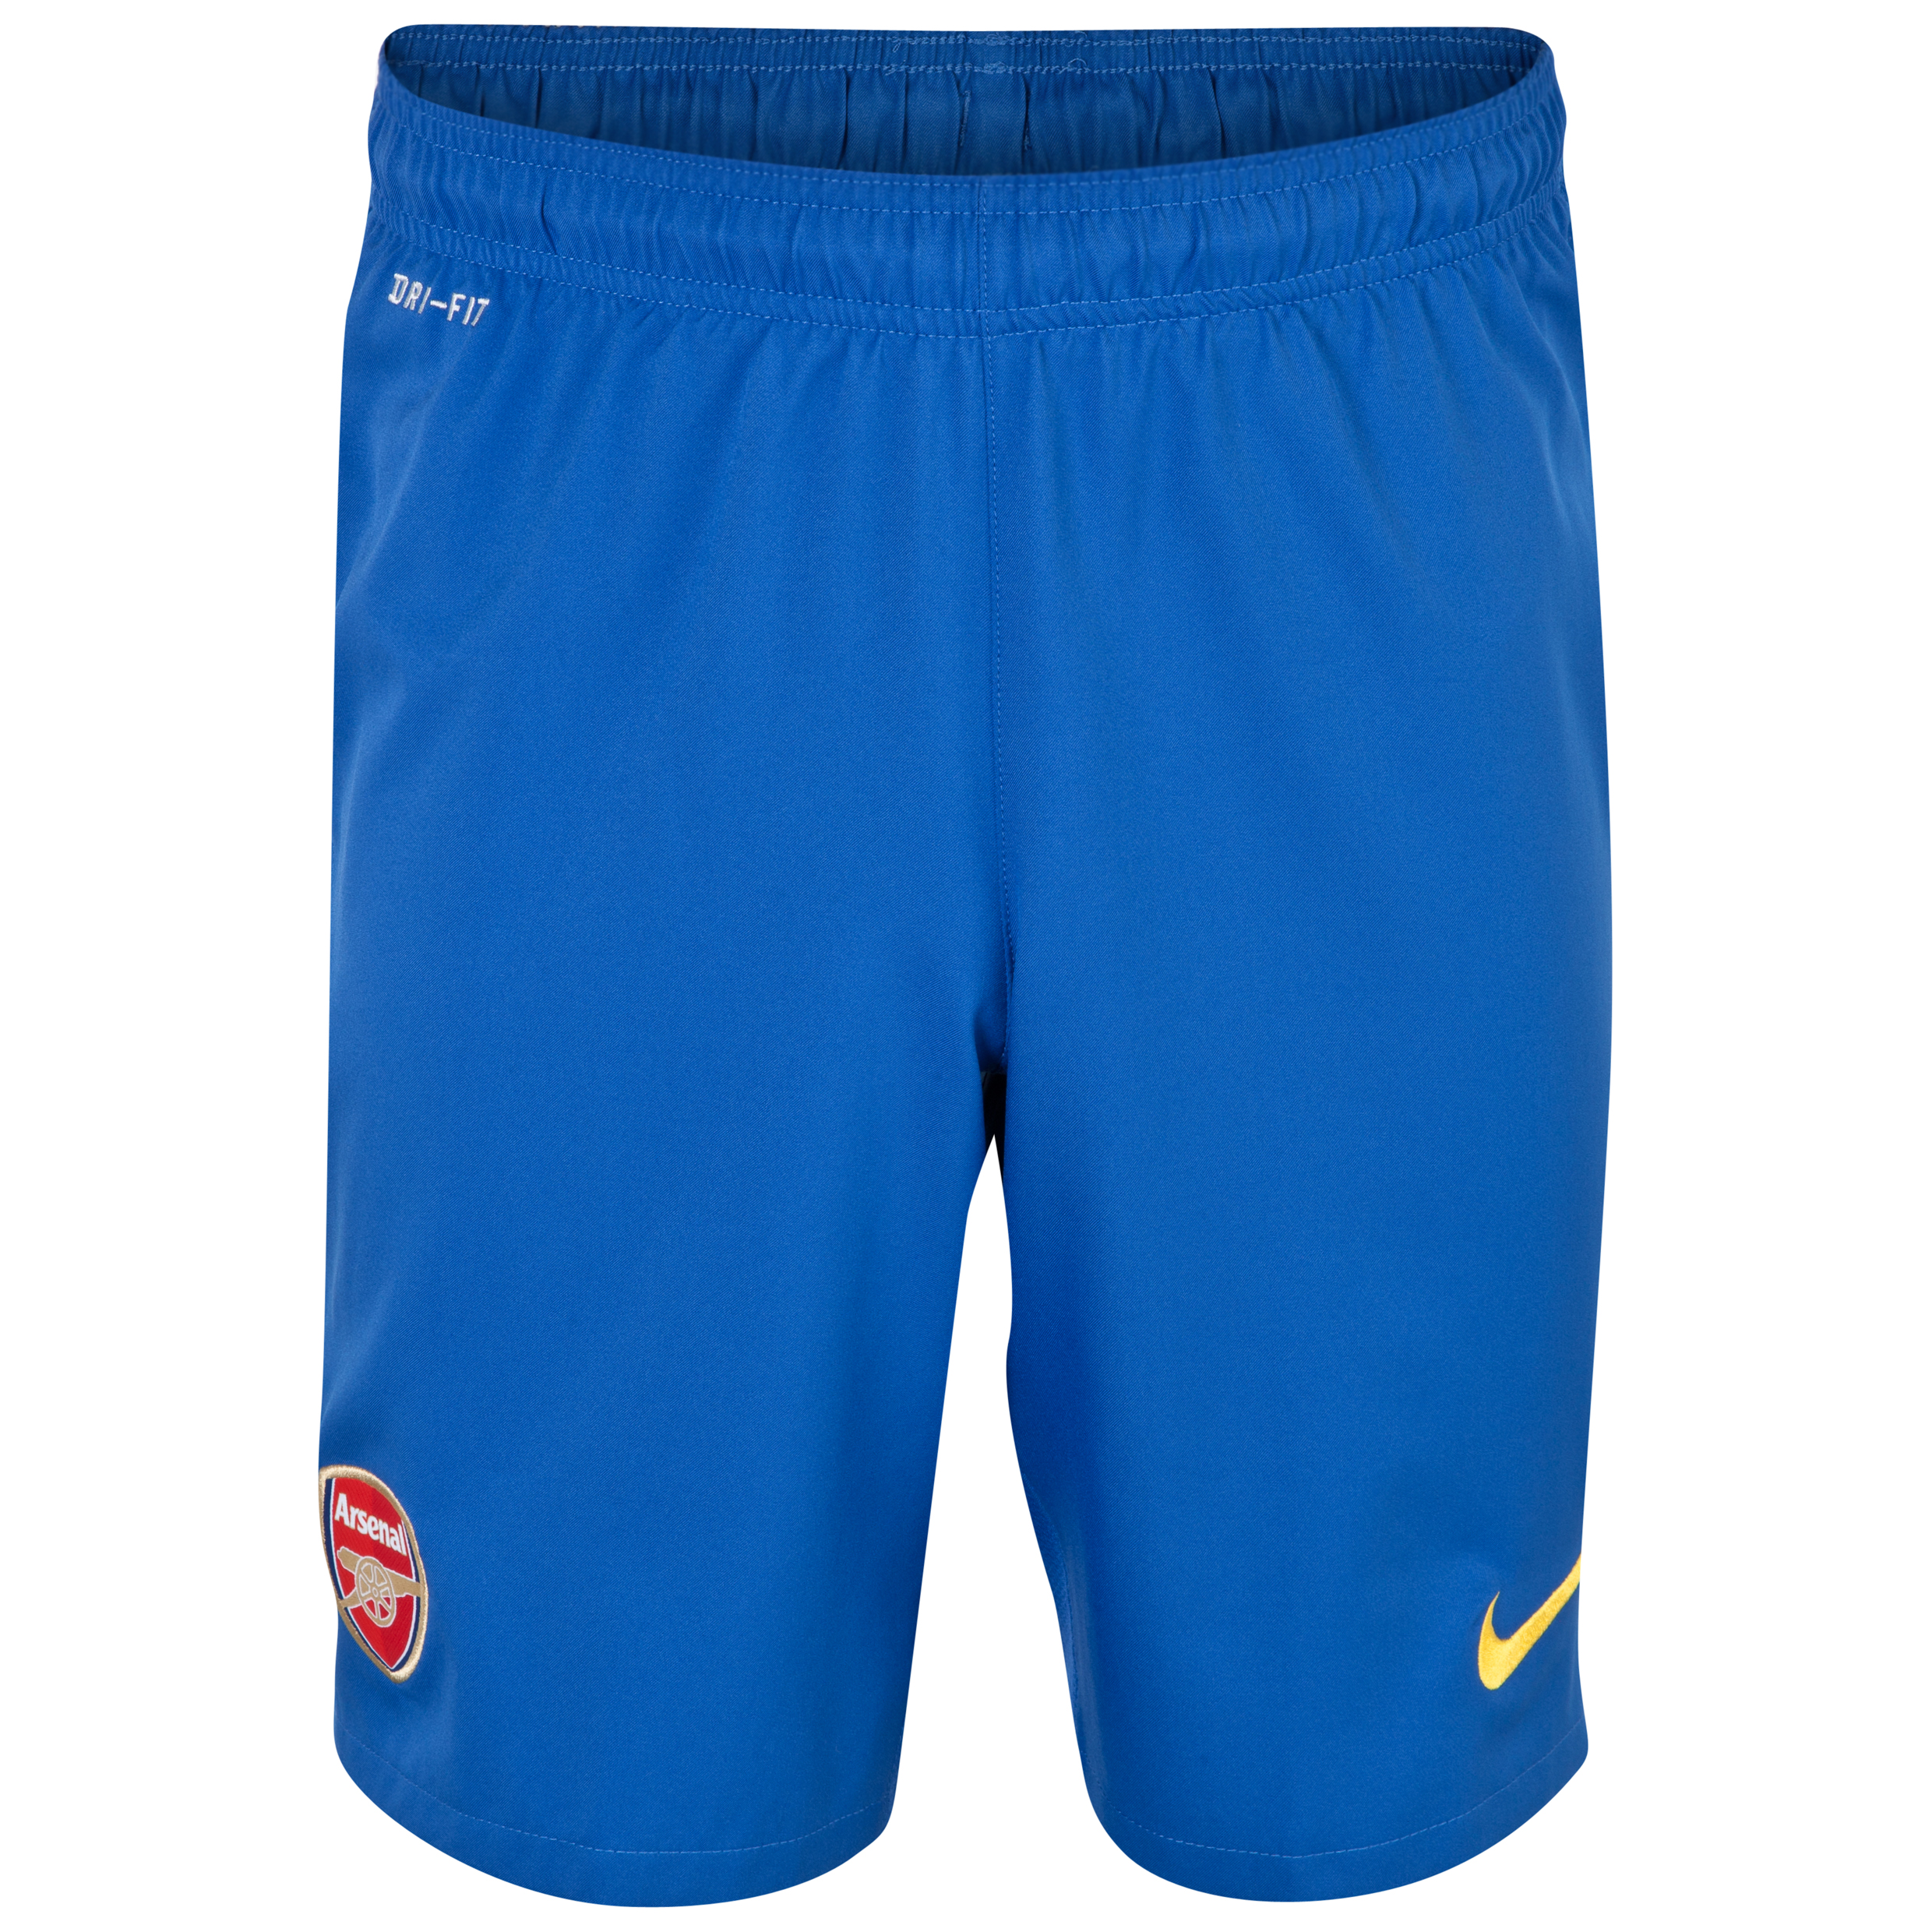 Arsenal Away Shorts 2013/14